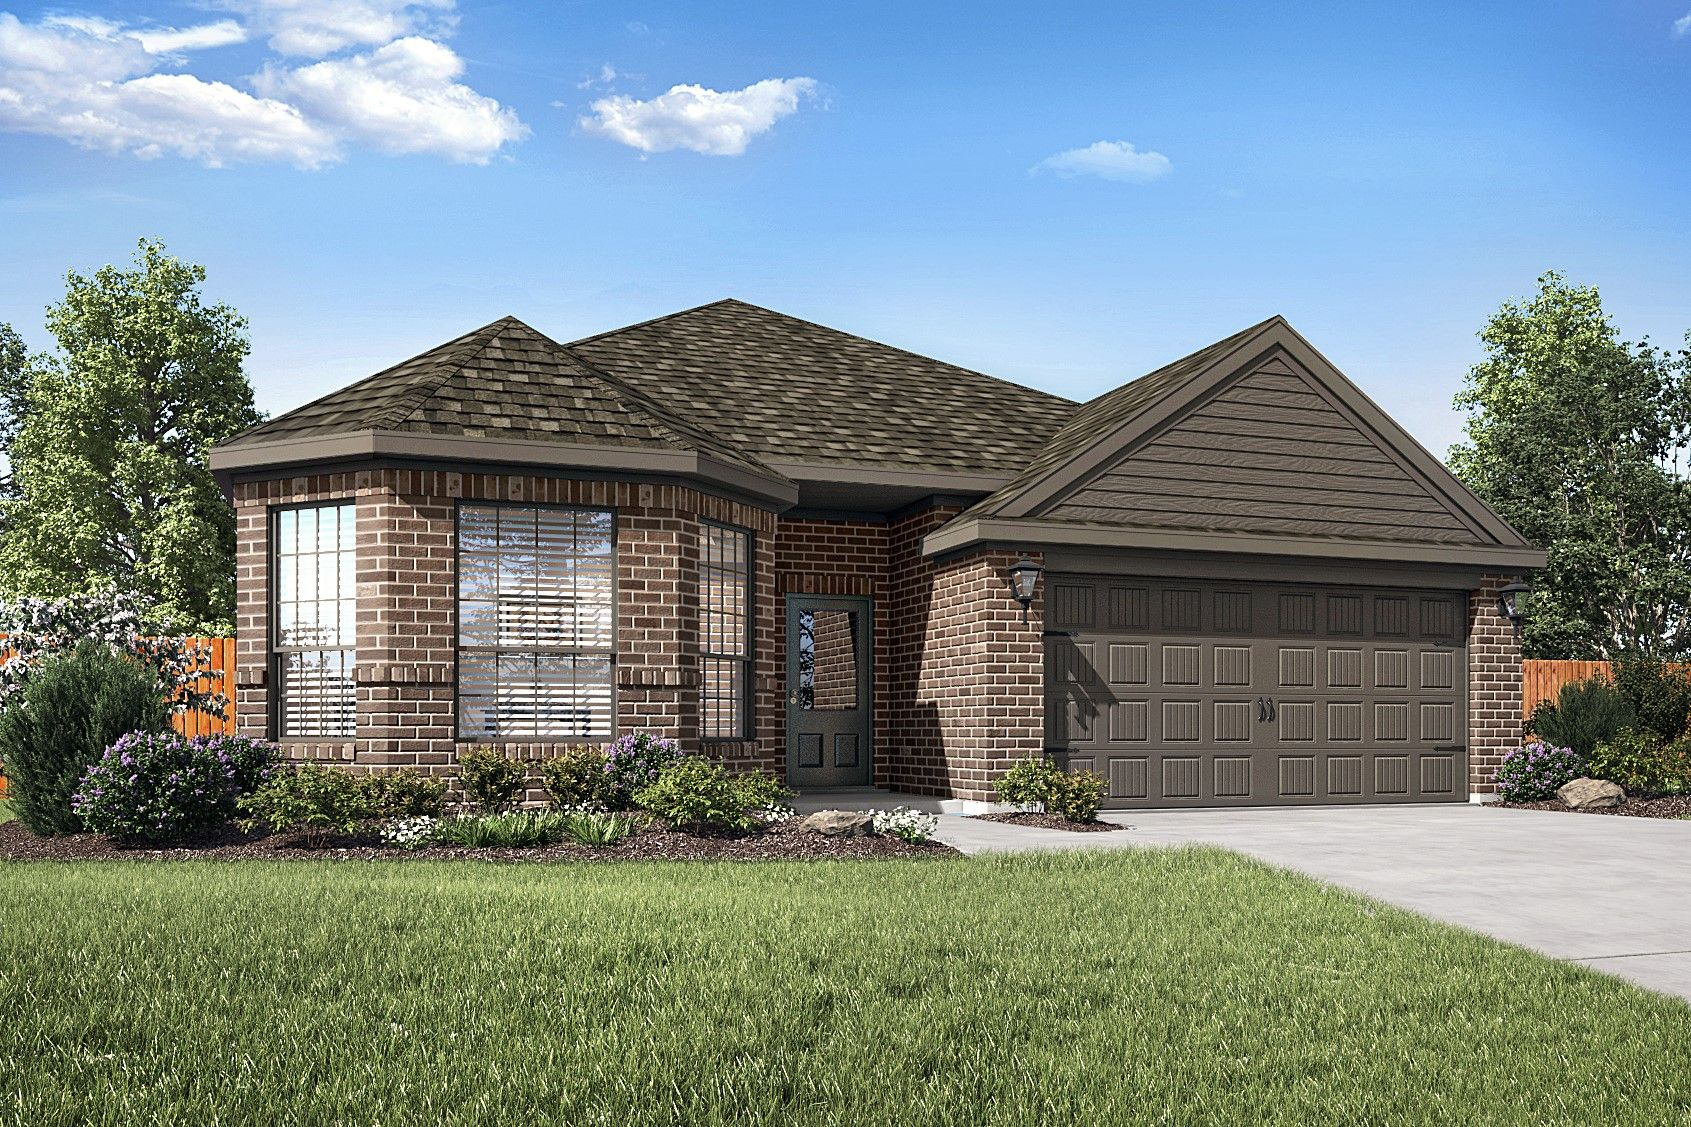 The Texoma Plan By LGI Homes:The gorgeous Texoma plan is available now.